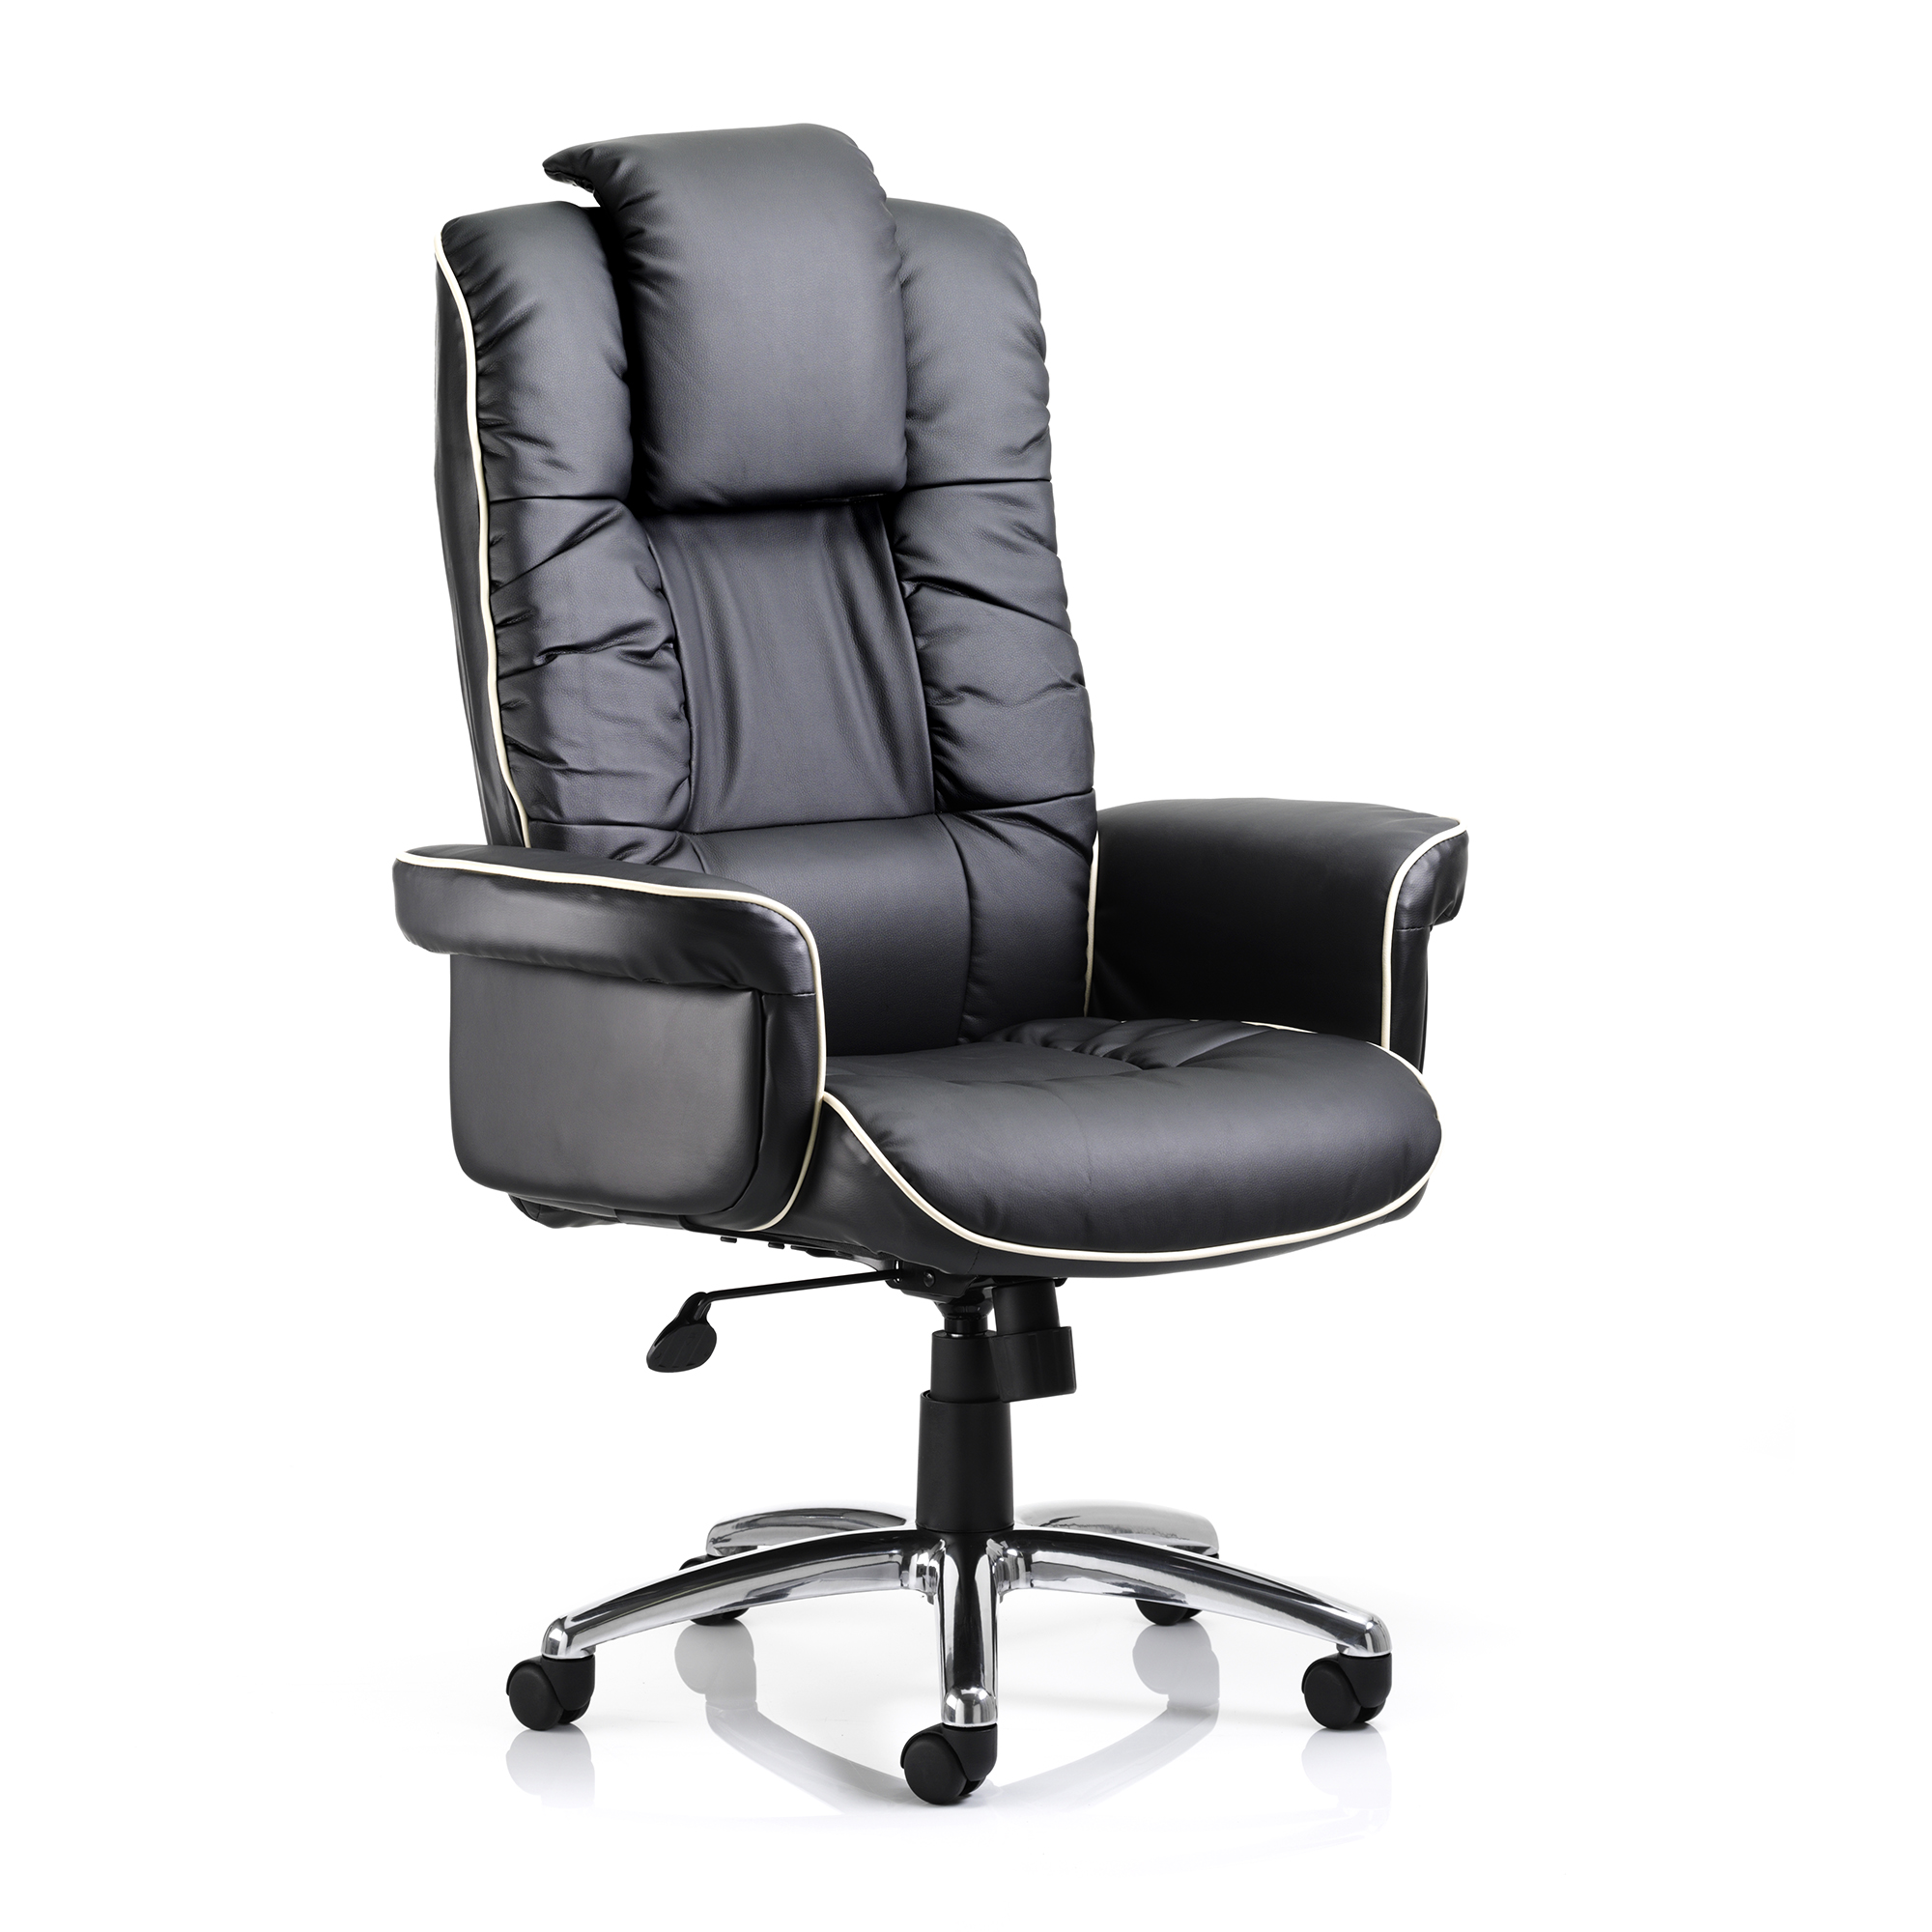 Executive seating Trexus Chelsea Executive Chair With Arms Bonded Leather Black Ref EX000001